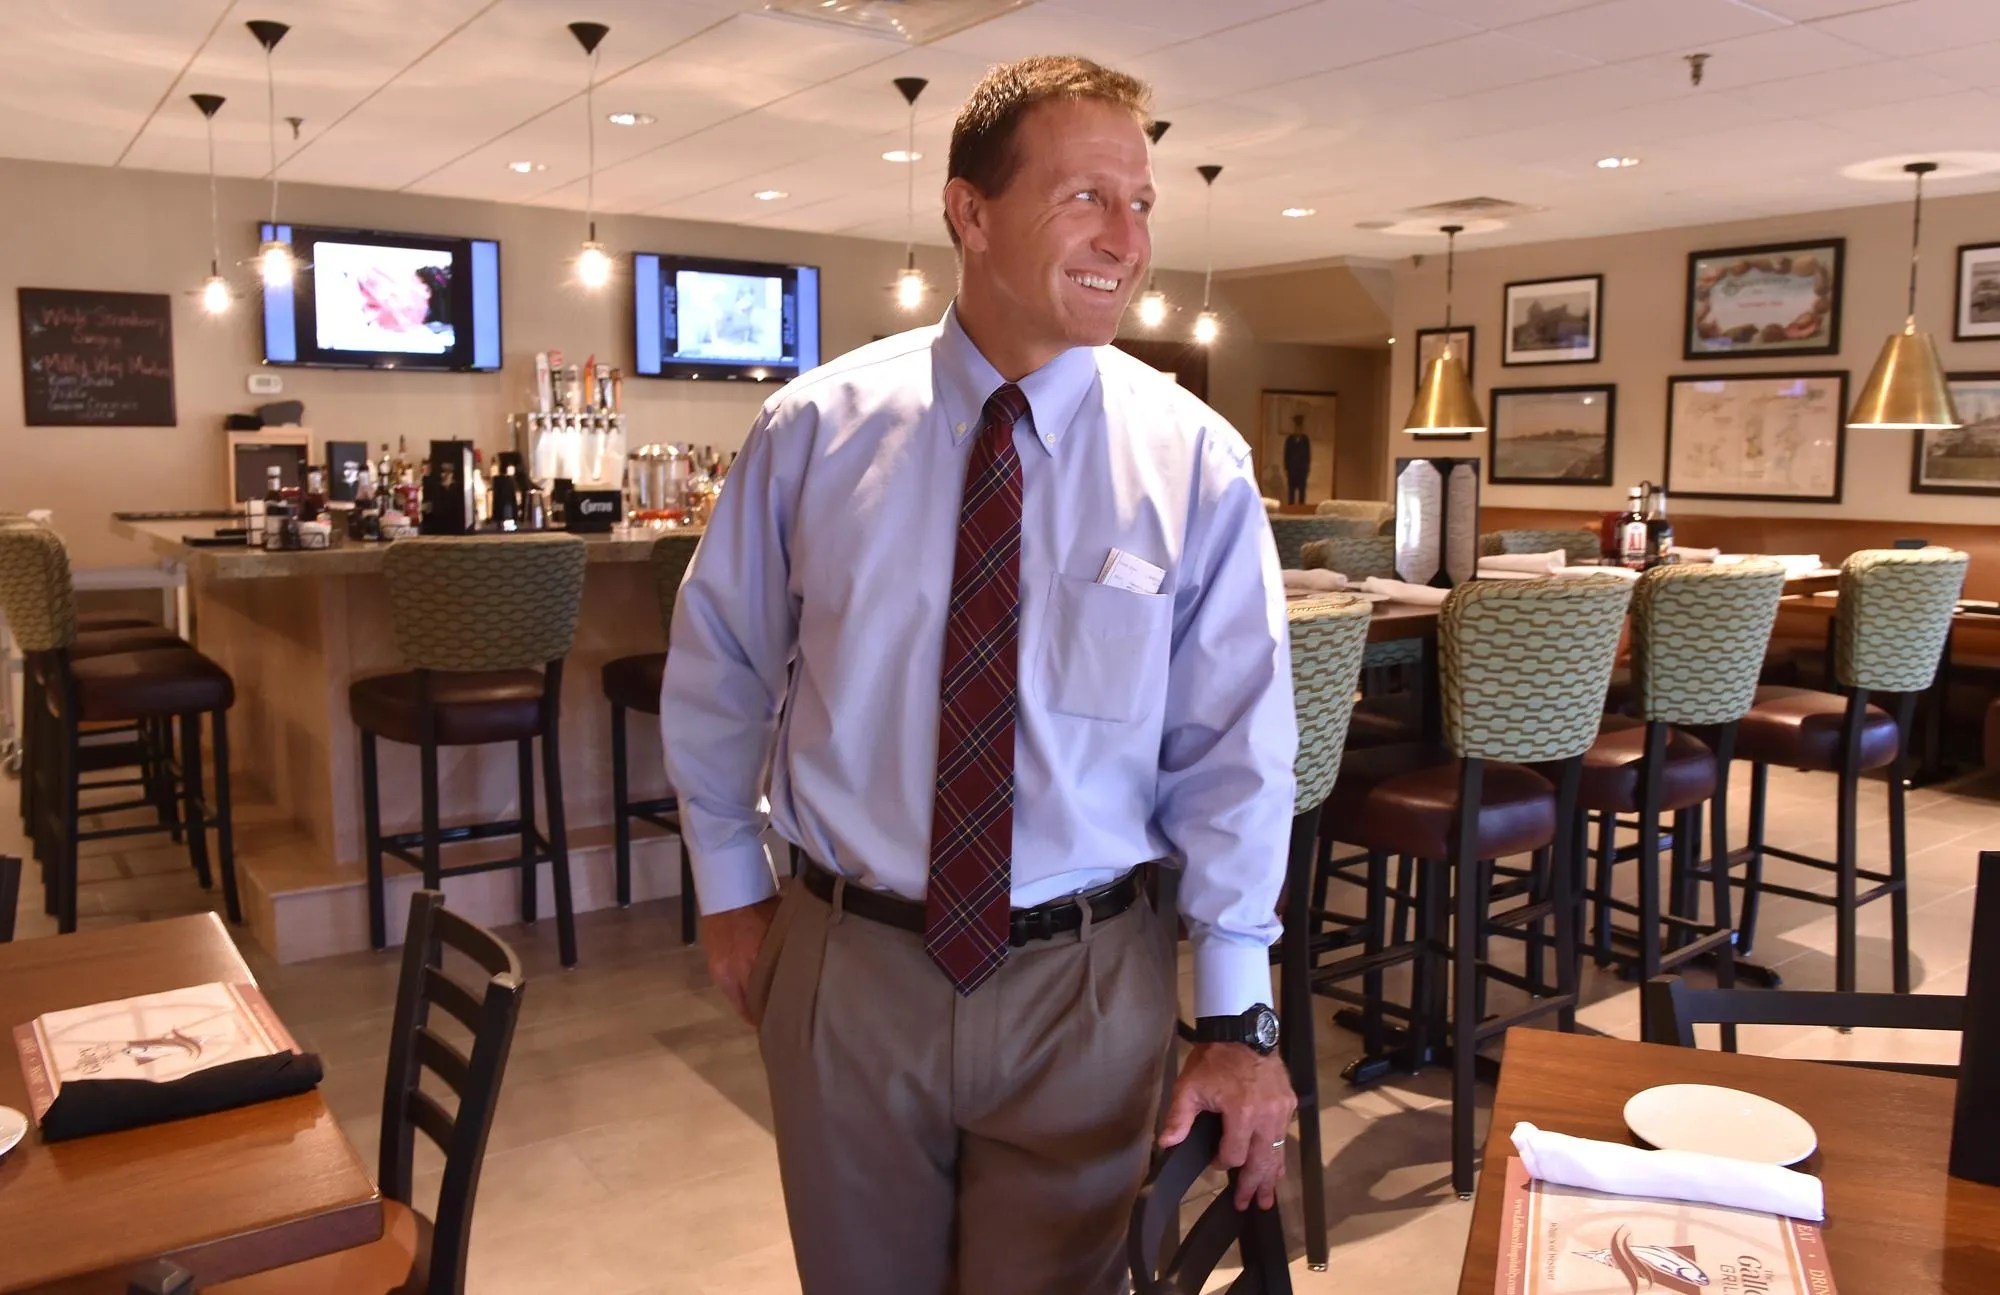 In this Herald News file photo, Charlie Fellows talks about the opening of The Galley Grille, a restaurant adjacent to White's of Westport.